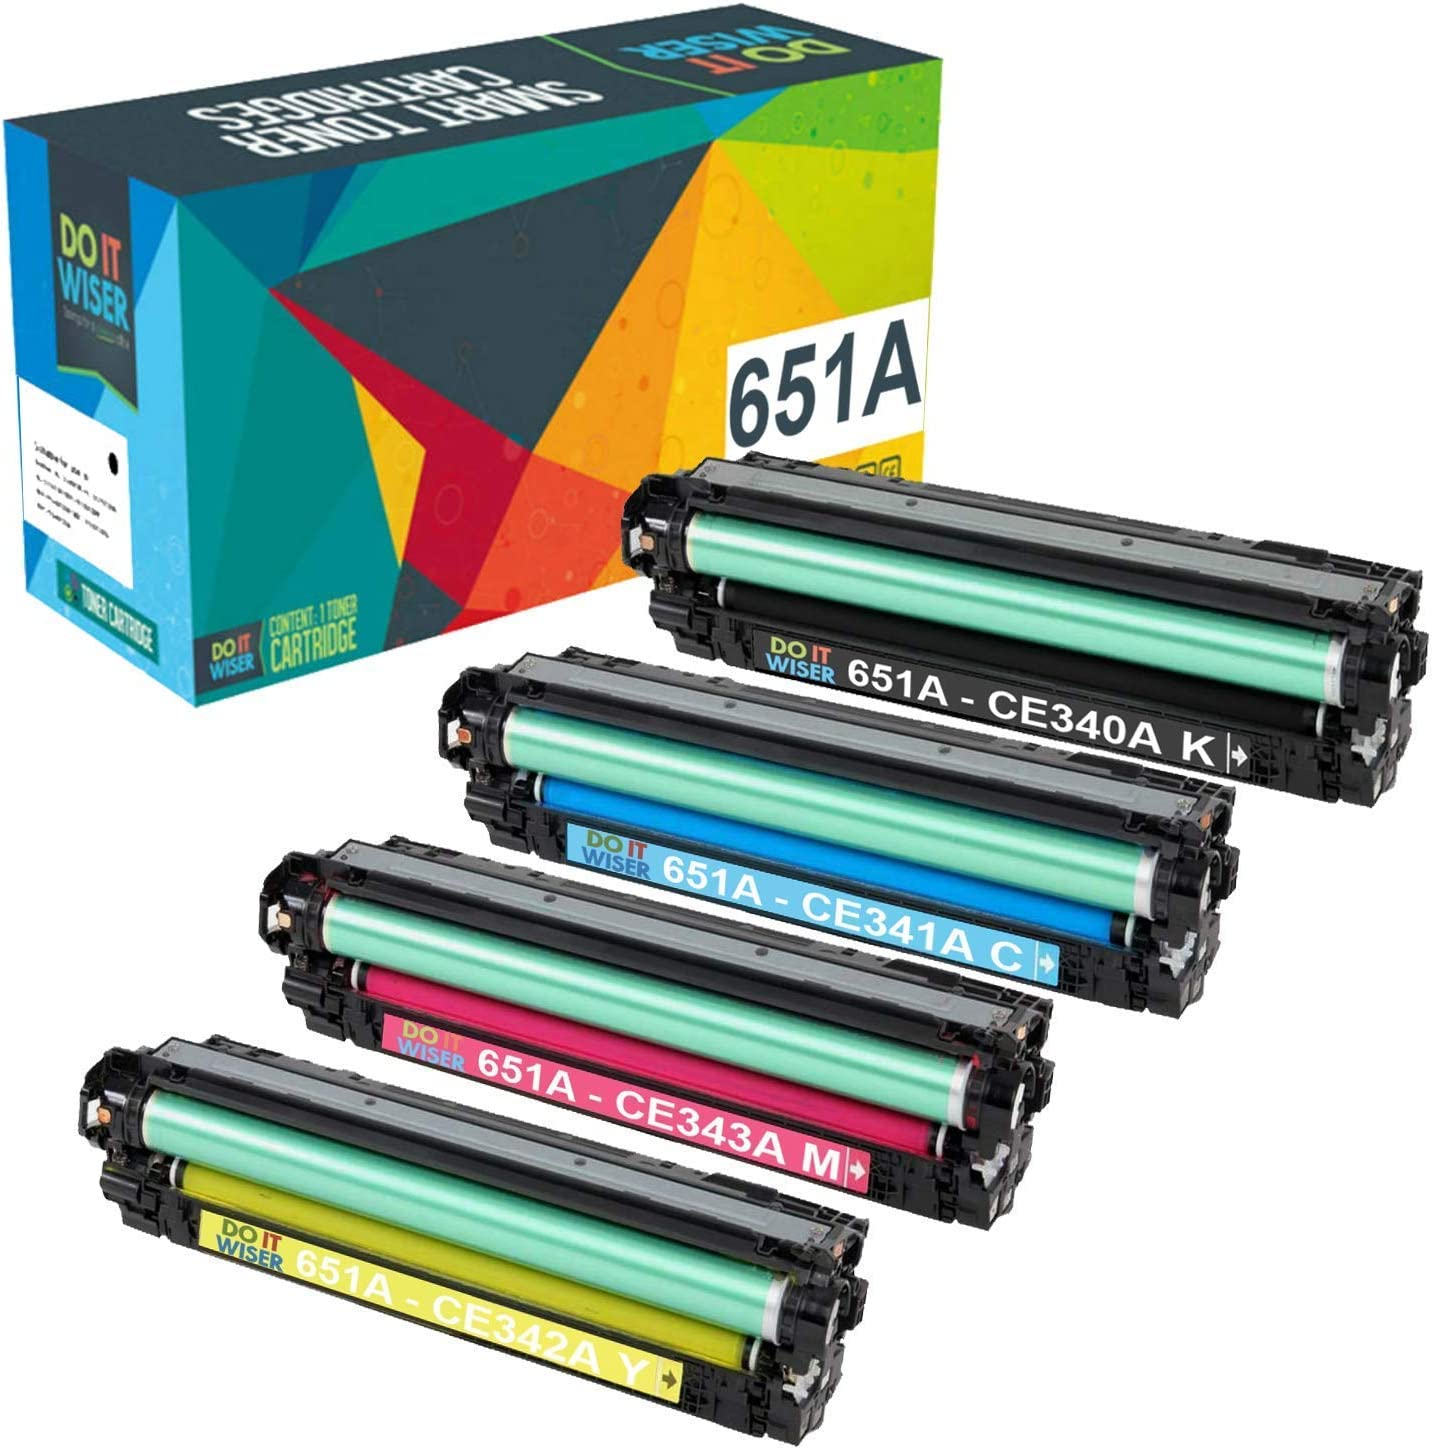 Do it Wiser Compatible for HP 651A CE341A CE342A CE343A CE340A Toner for HP Laserjet Enterprise 700 MFP M775 M775dn - 4 Pack